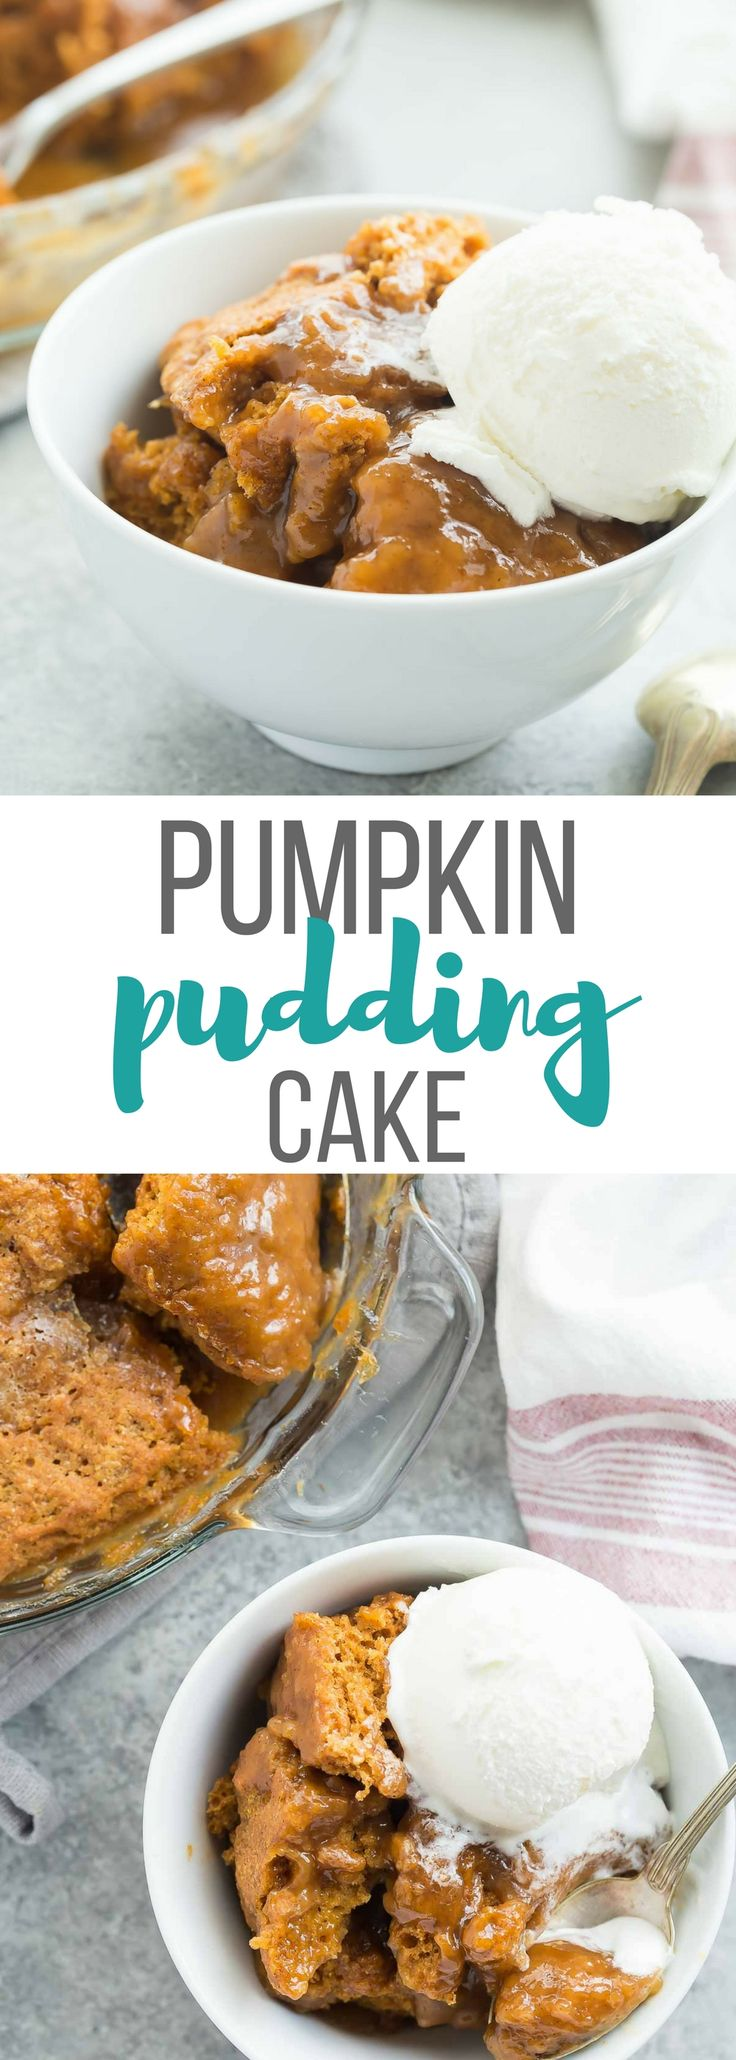 This Easy Pumpkin Pudding Cake takes just 10 minutes prep and makes it's own caramel pudding sauce as it bakes! #fall #Thanksgiving #desserts